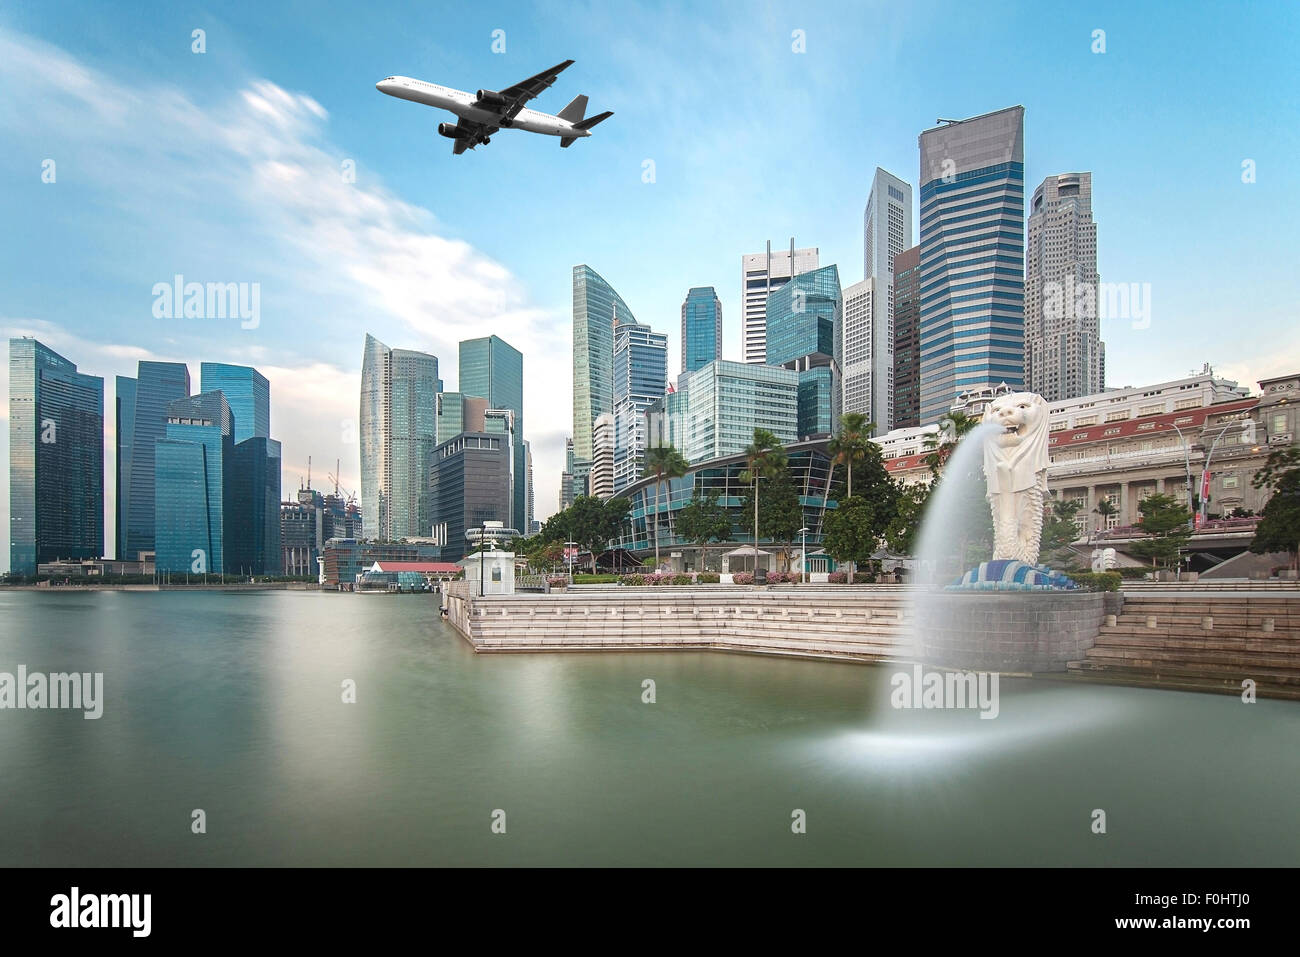 Travel, Transportation concept - Airplane flying over Singapore city in morning time - Stock Image